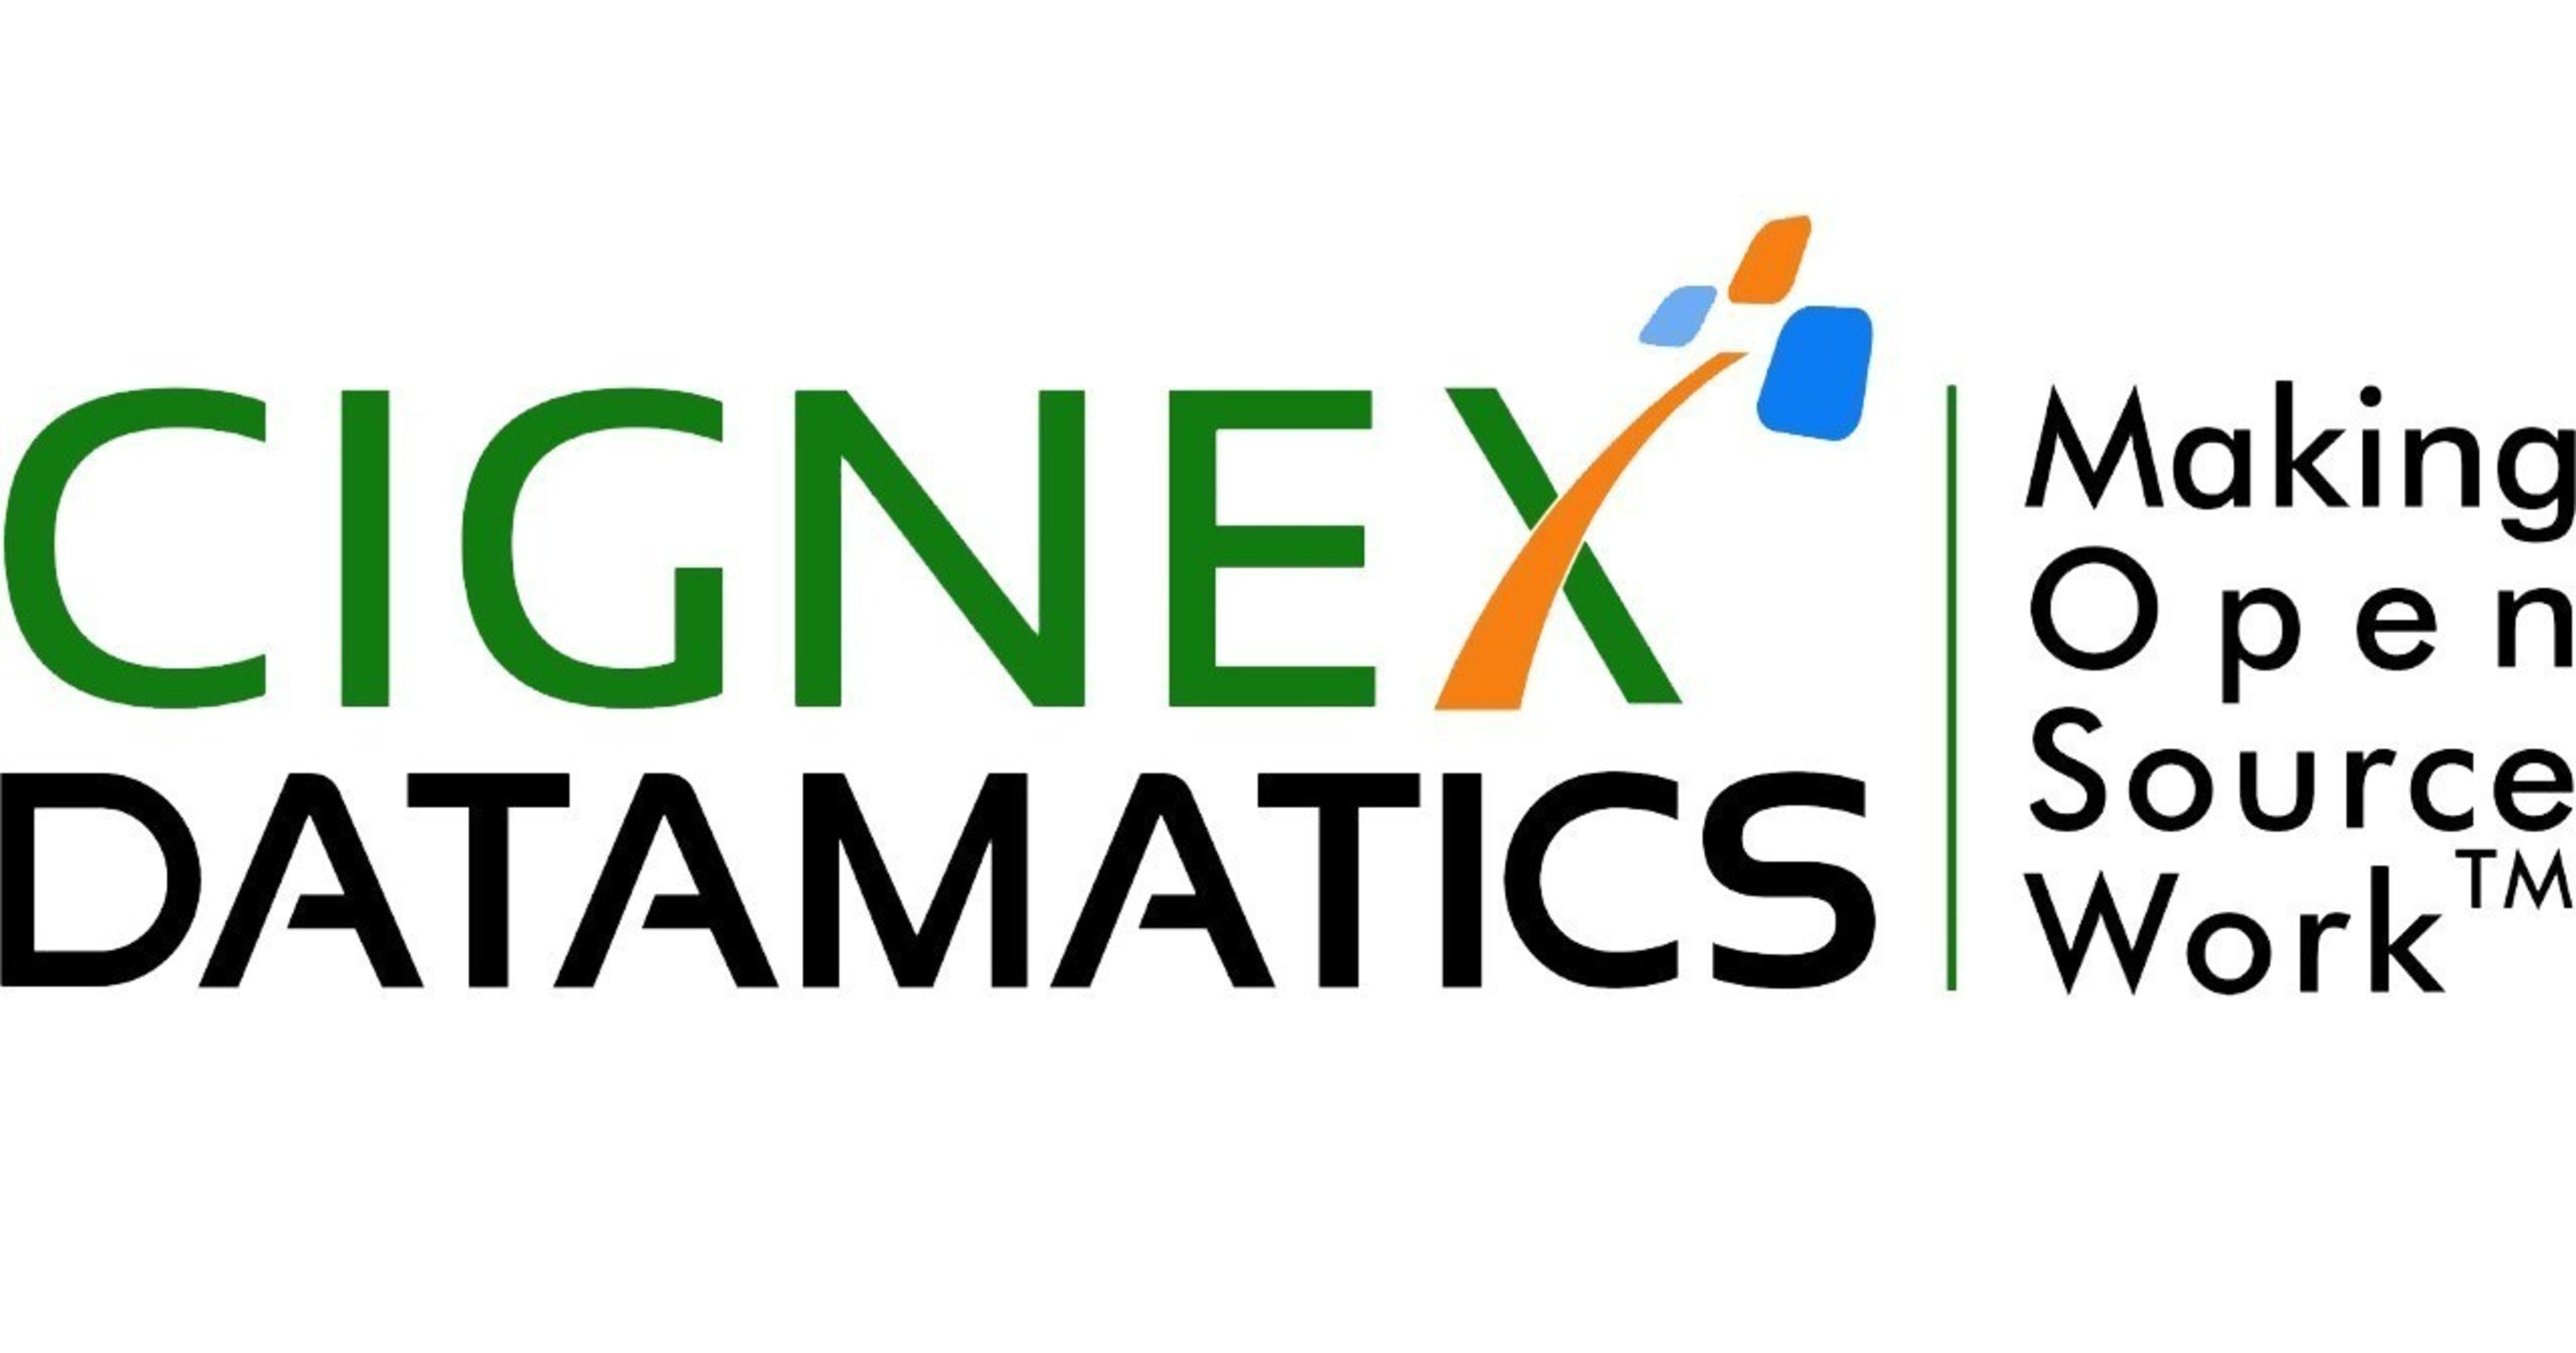 CIGNEX Datamatics Presents Webinar on Delivering Cross-Platform B2C eCommerce Experience With